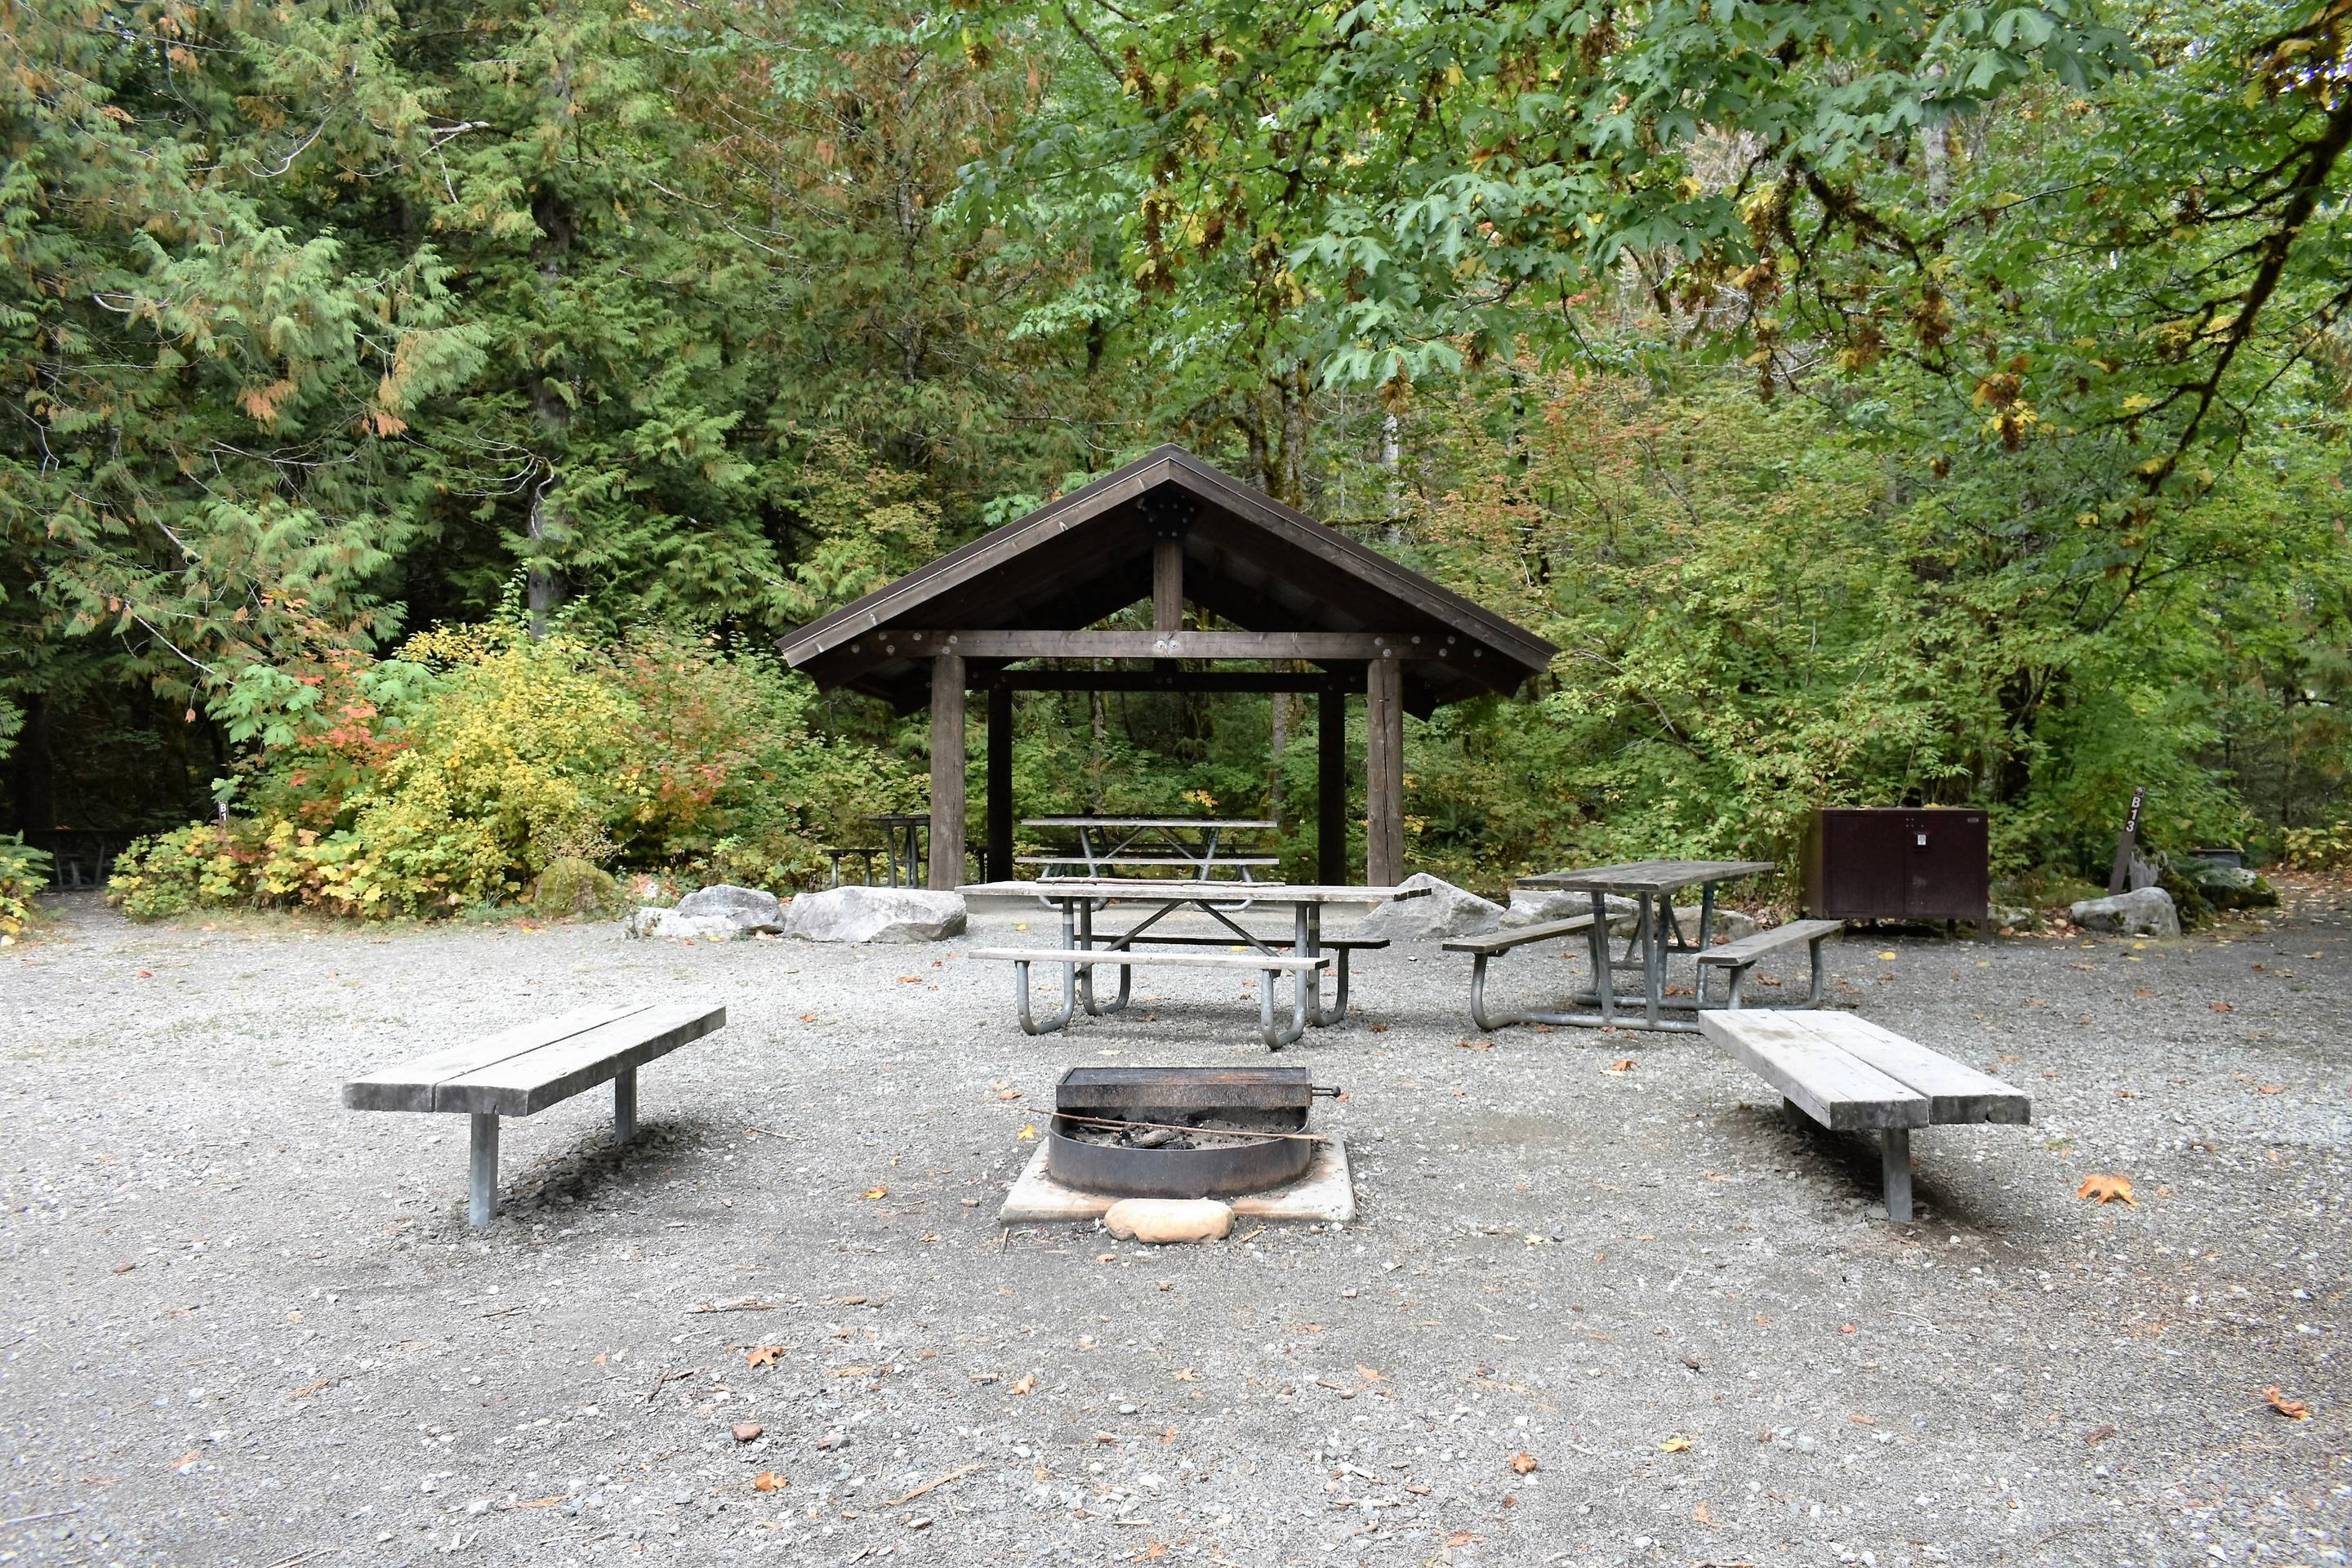 Shelter providing rain and sun protection for picnic tables with fire circle and benches in foregroundView of group shelter and campfire circle